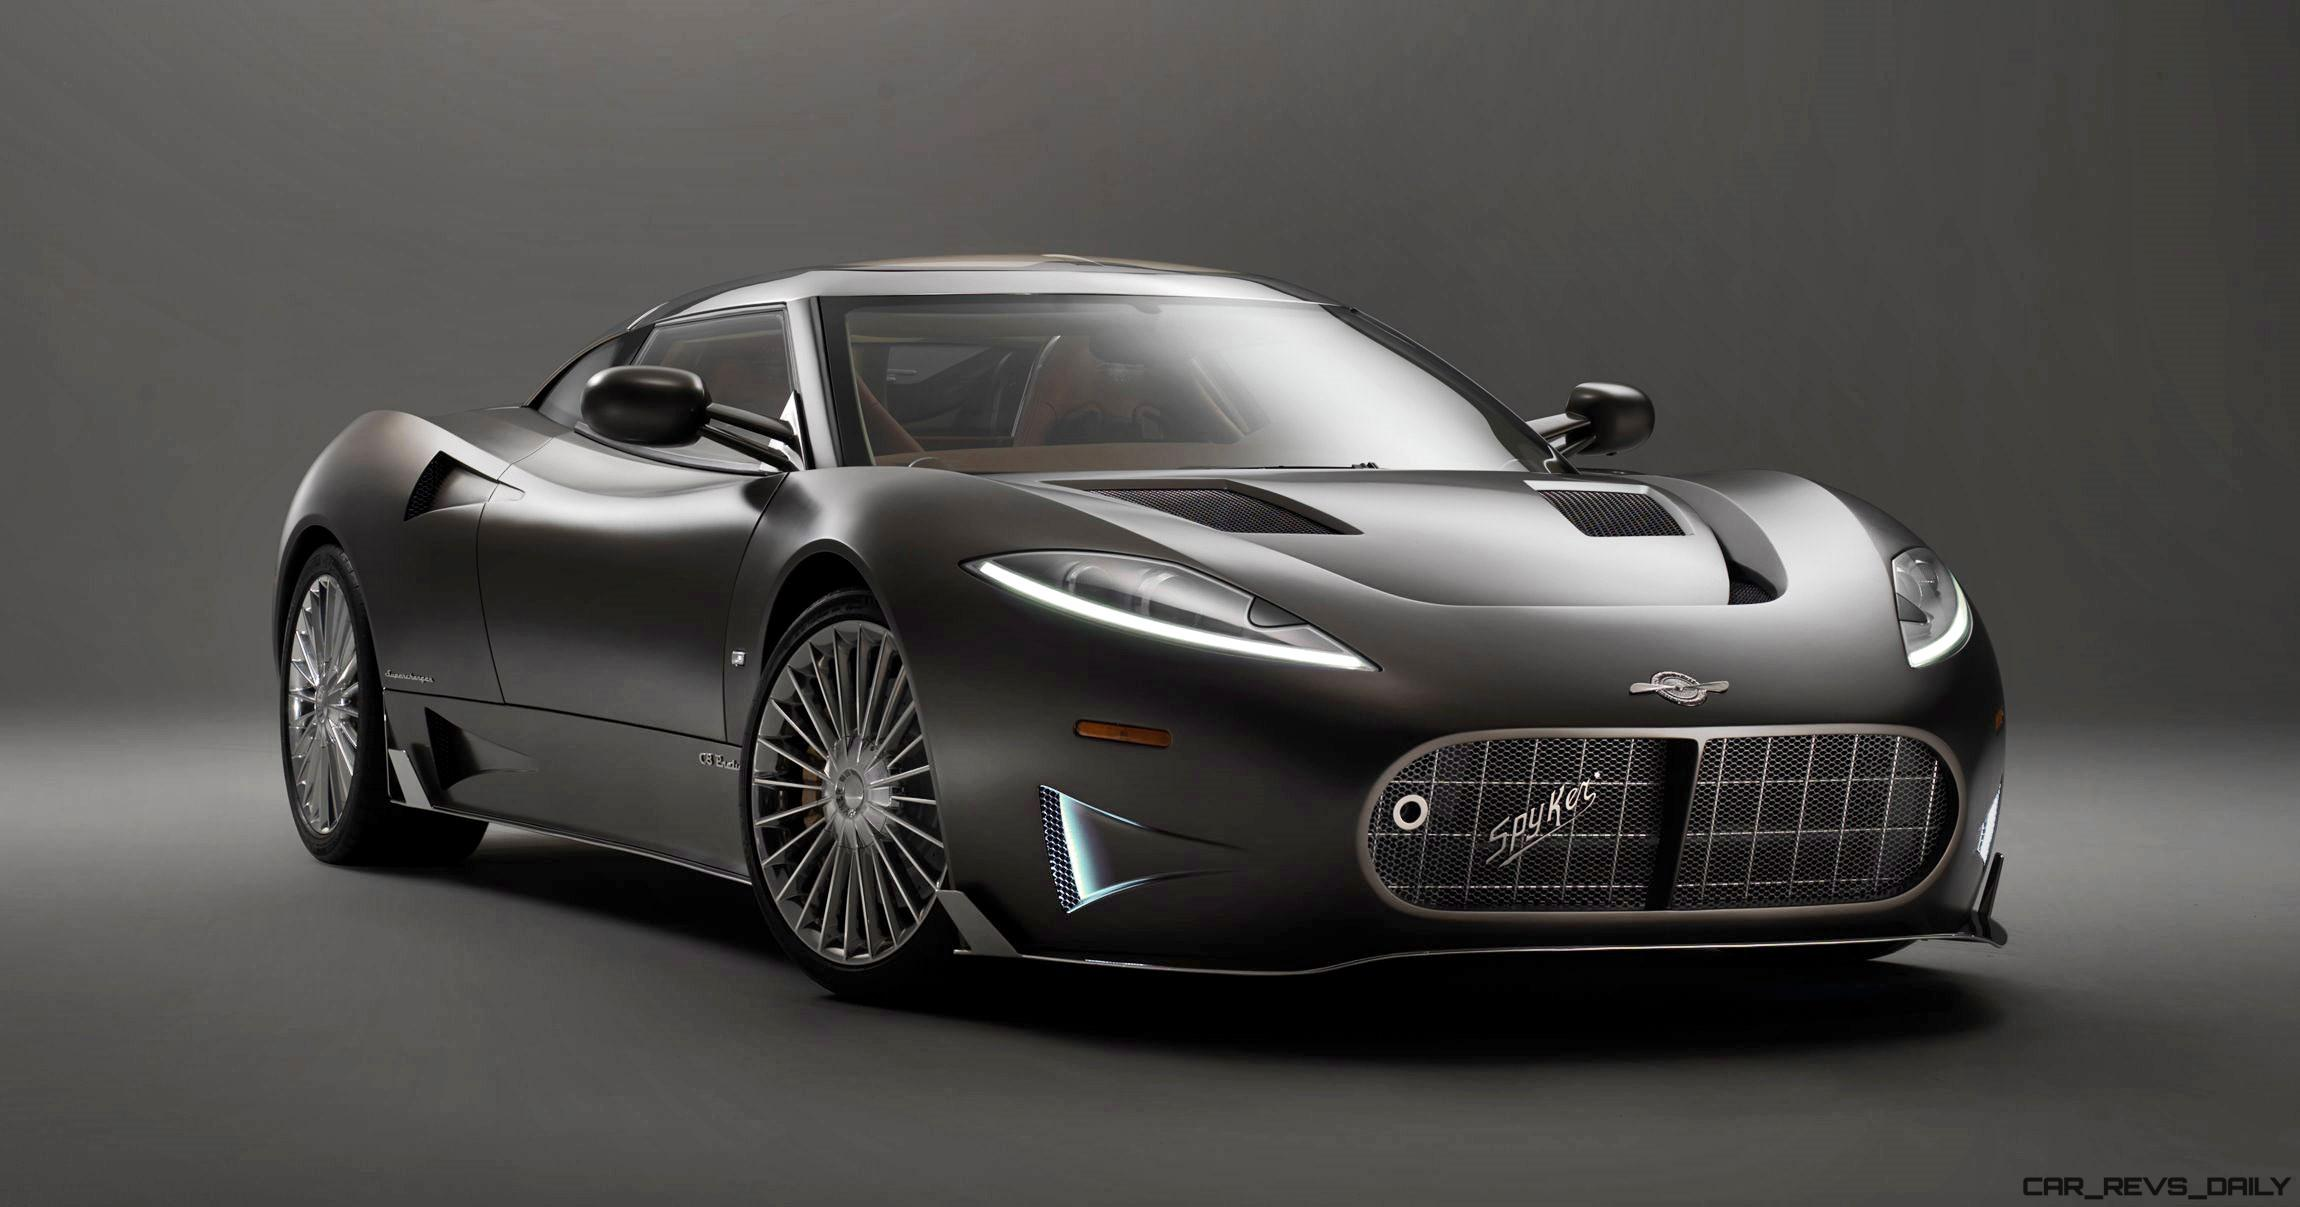 Exotic Euro Cars >> 2017 SPYKER C8 Preliator - Sharp 3rd-Gen Exotic is Coming to America!